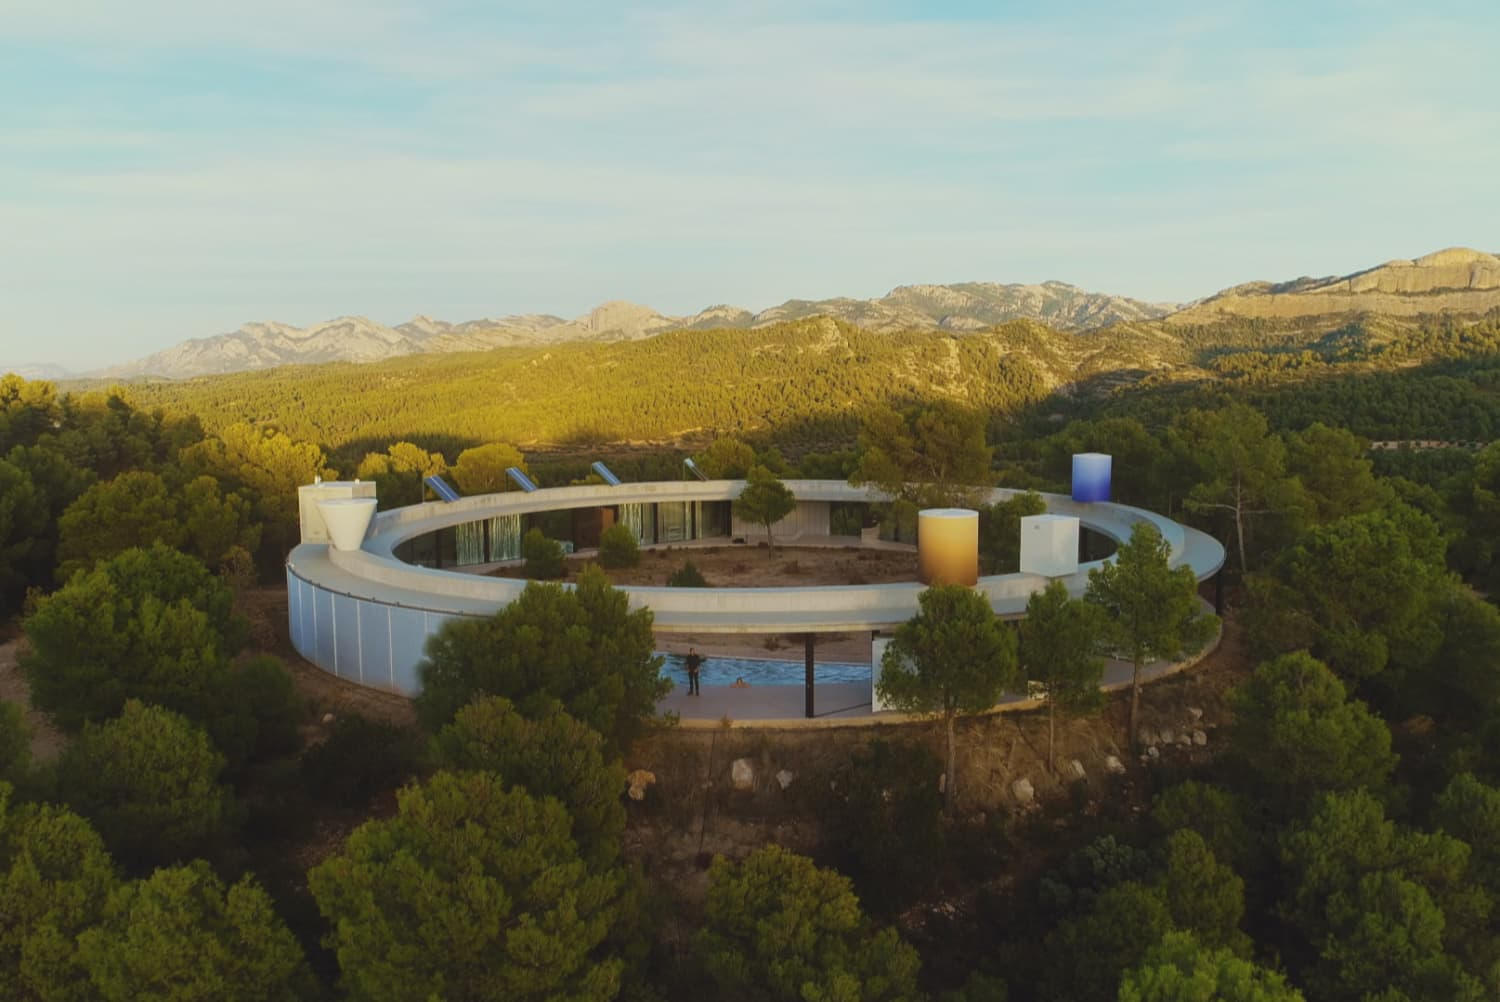 The One Genius Thing I Learned From Watching Netflix's 'The World's Most Extraordinary Homes'